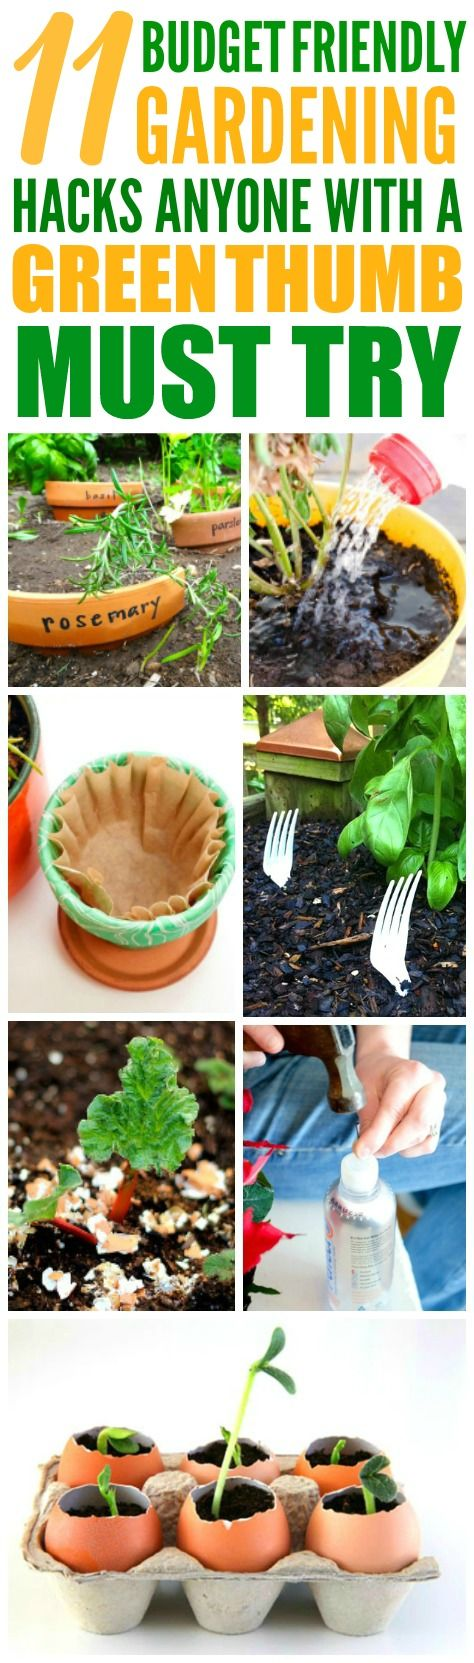 These 11 Easy Gardening Hacks are THE BEST! I'm so happy I found these AMAZING gardening tips! Now I have a great way to frugally take care of my garden and keep it safe! Definitely pinning!